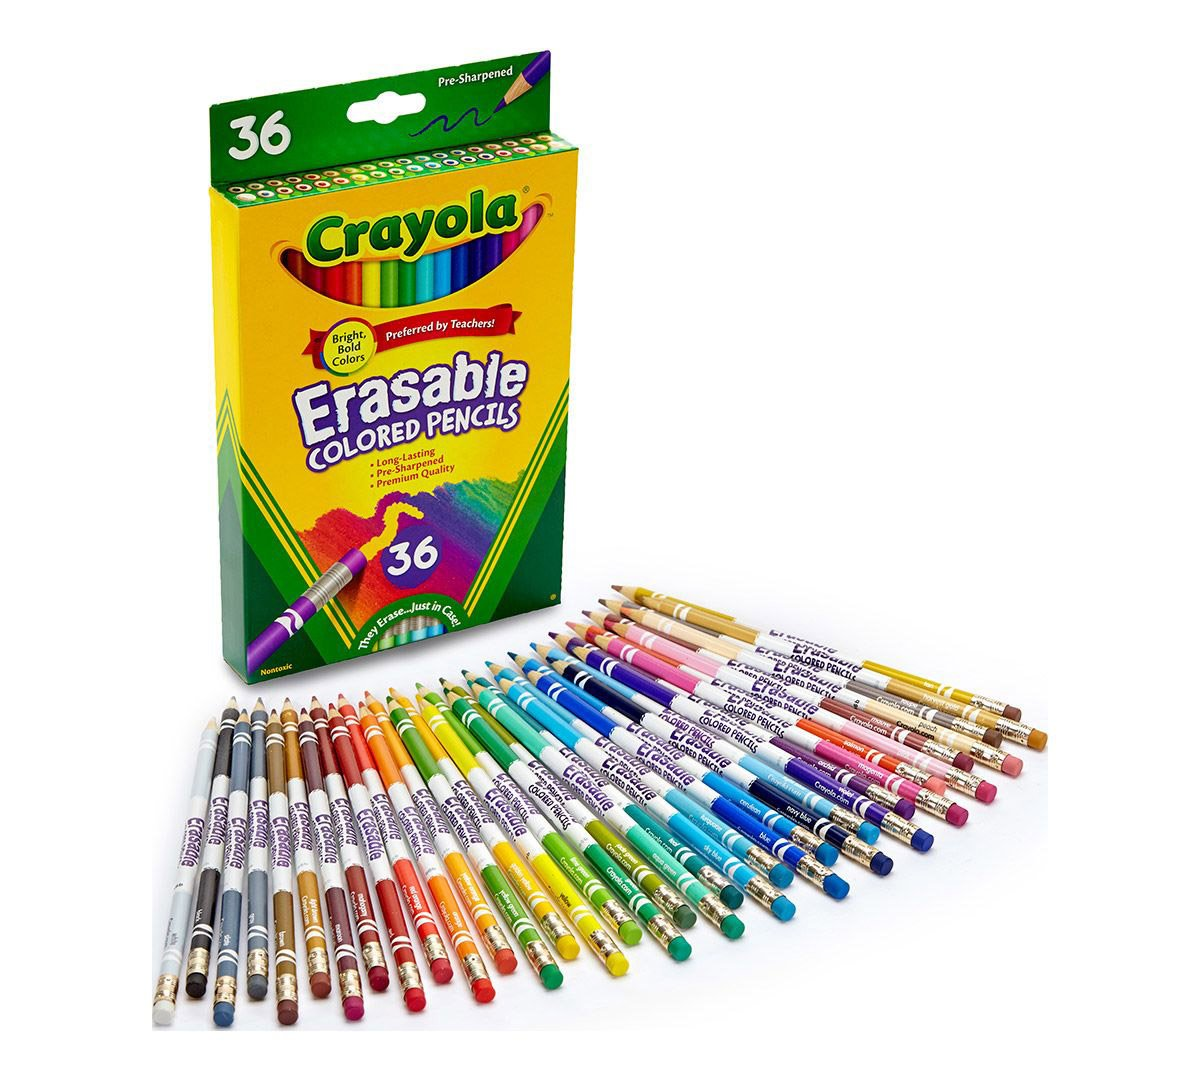 Crayola Erasable Colored Pencils, 36 Non-Toxic, Pre-Sharpened, Fully Erasable Pencils Colored Pencil Set for Adult Coloring Books or Kids 4 & Up, Great for Shading, Gradation, Line Art & More by Crayola